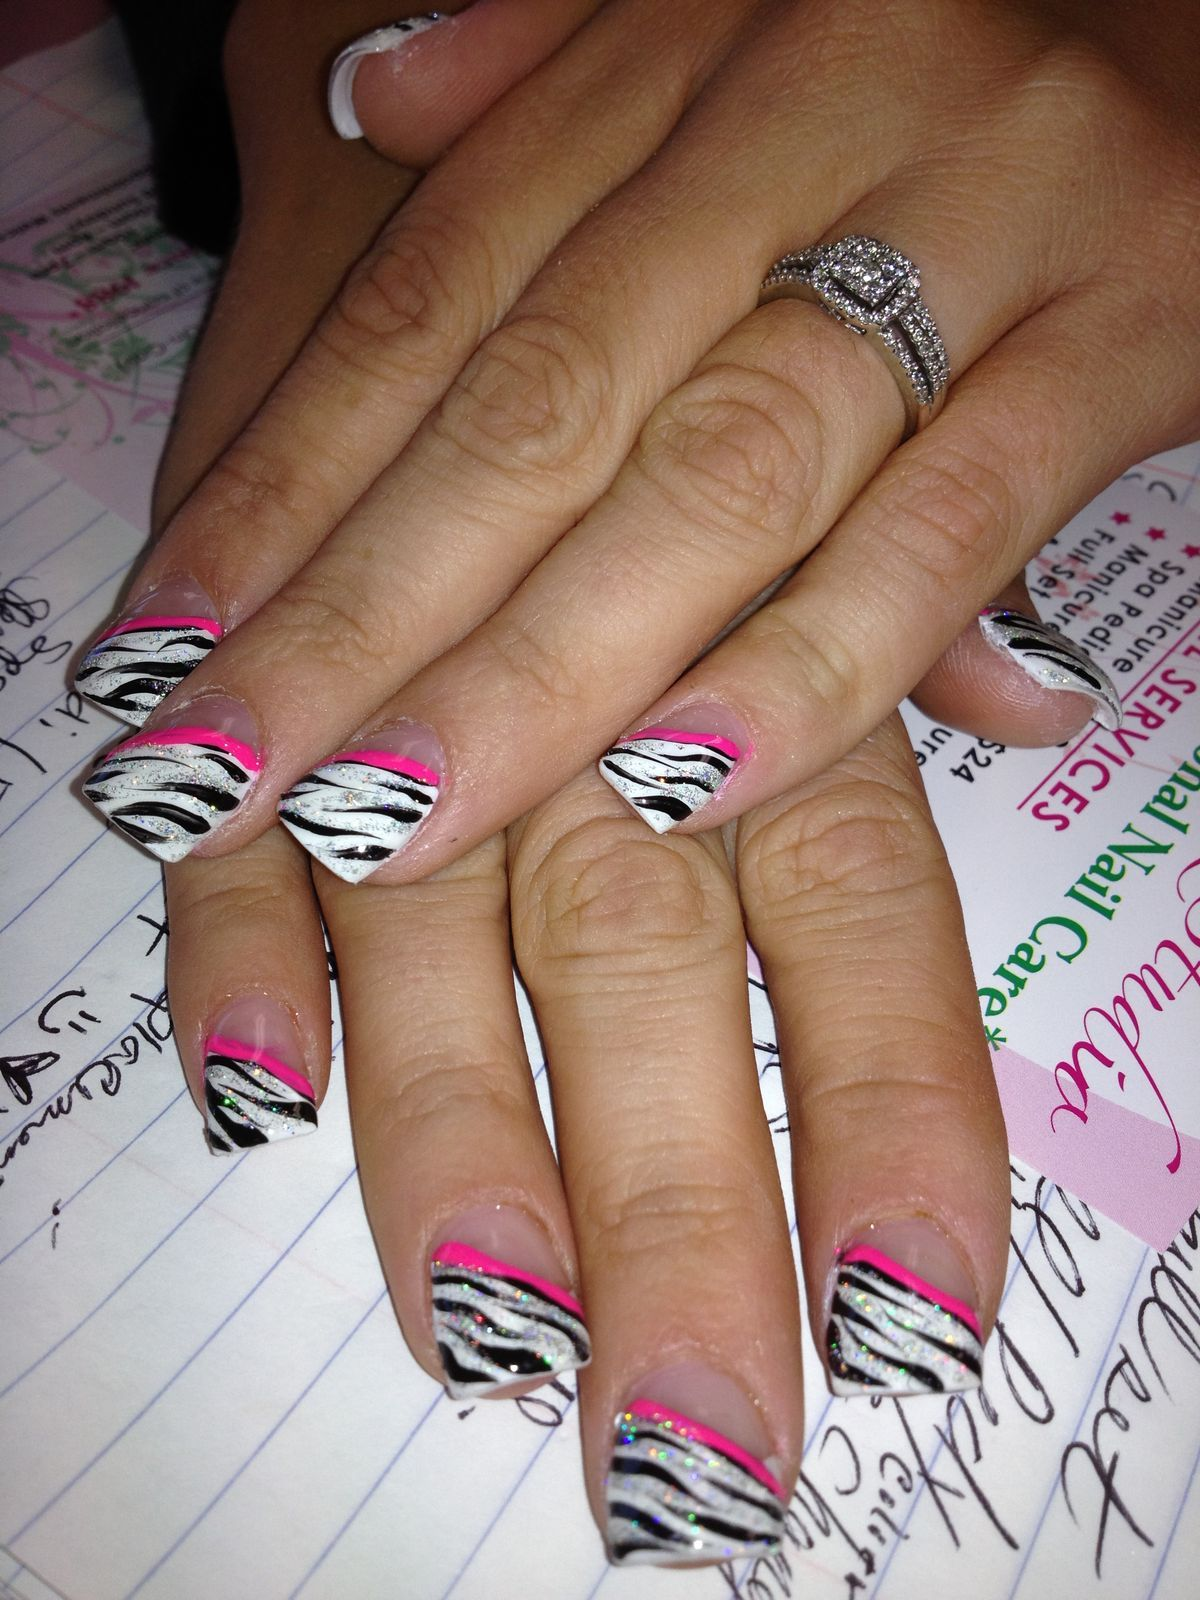 340d968f37e1983fdd7e593f74d3b3b1.jpg 1,200×1,600 pixels Zebra Nail Designs,  Cute Nail Designs, Beautiful - Pin By Marci Miller On Nails Pinterest Nails, Zebra Nails And